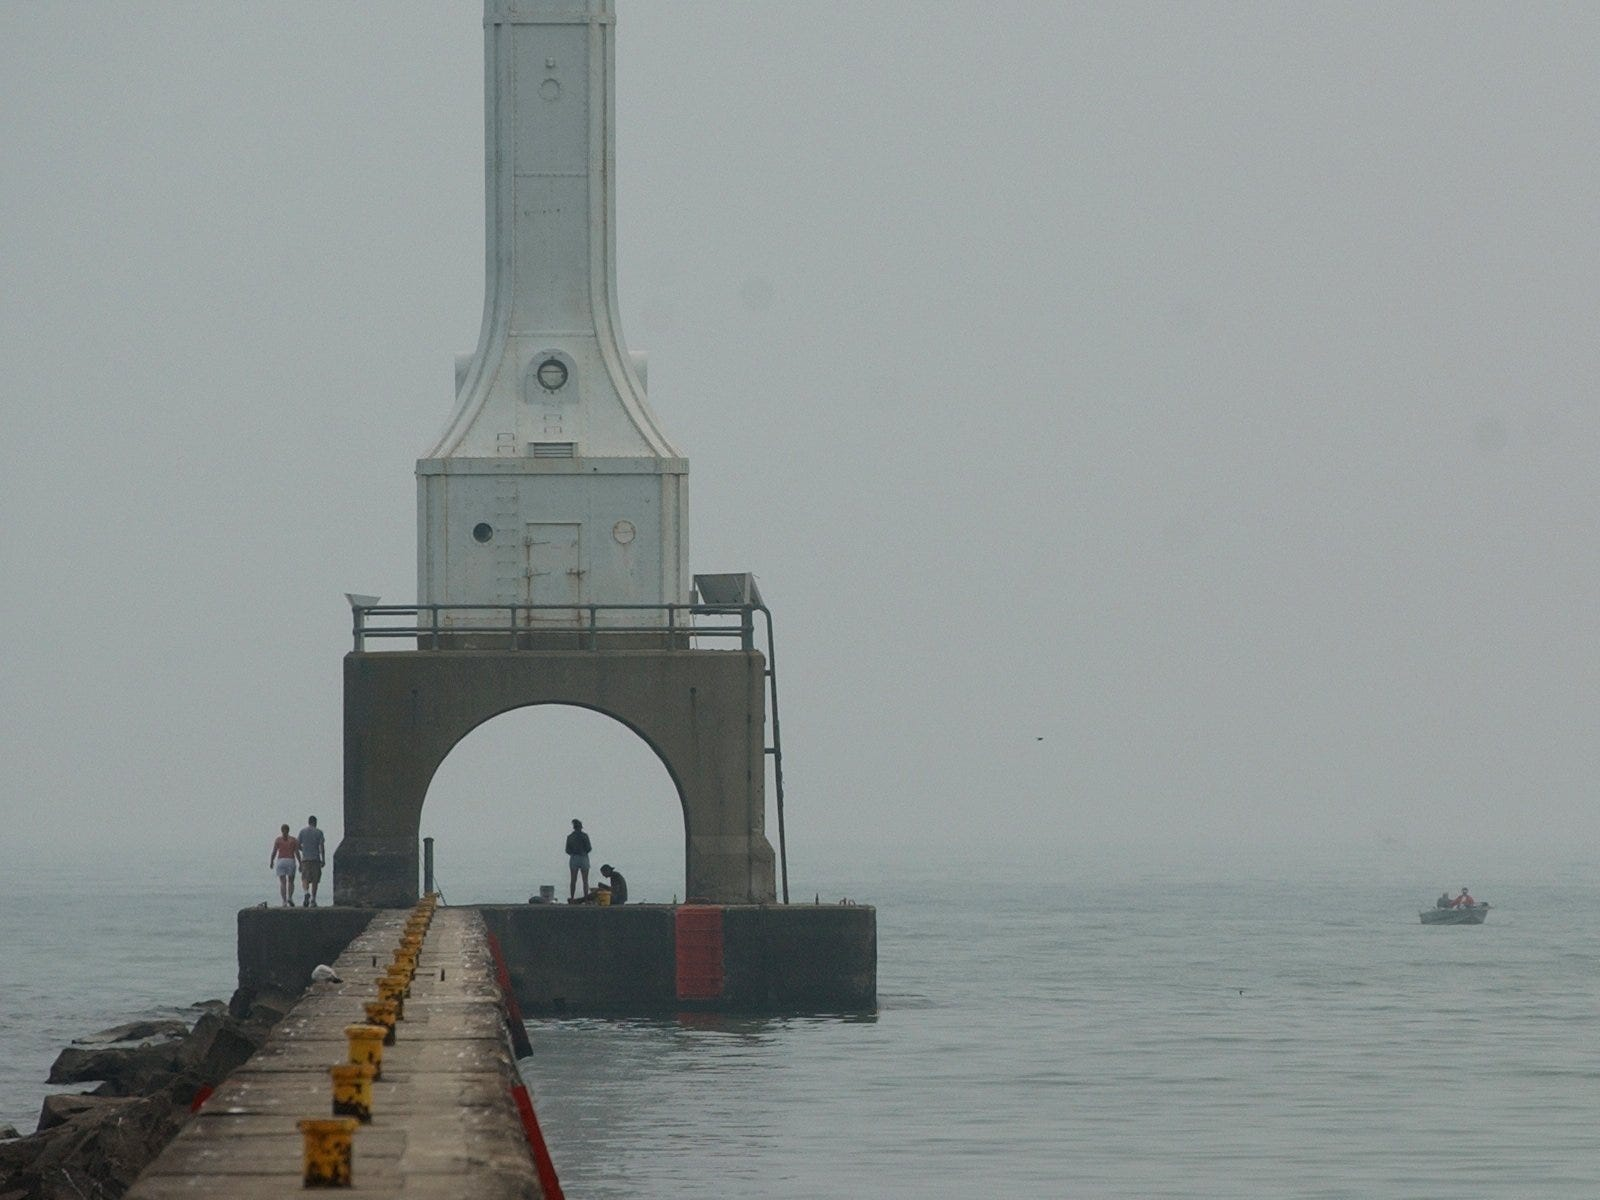 Pedestrians and fishermen are pictured near Port Washington's lighthouse in June 2002.